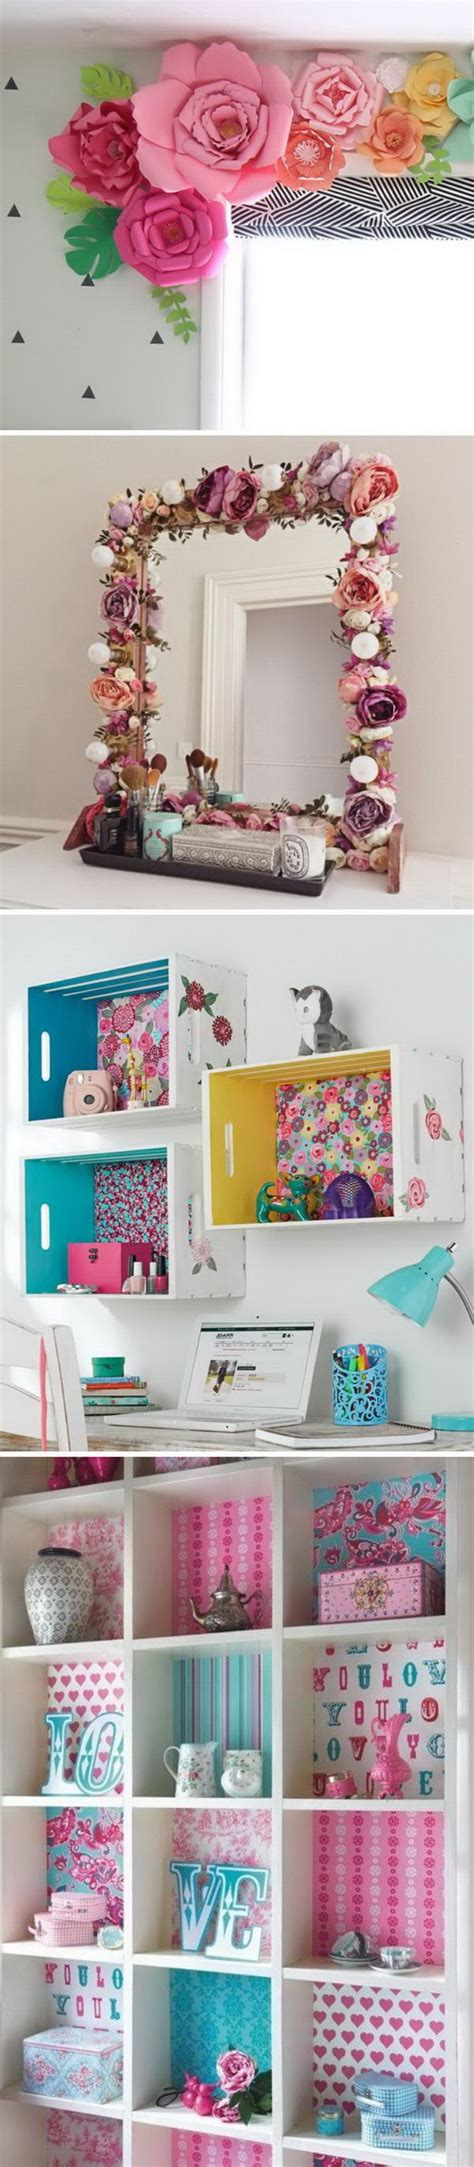 Diy Girls Room Projects